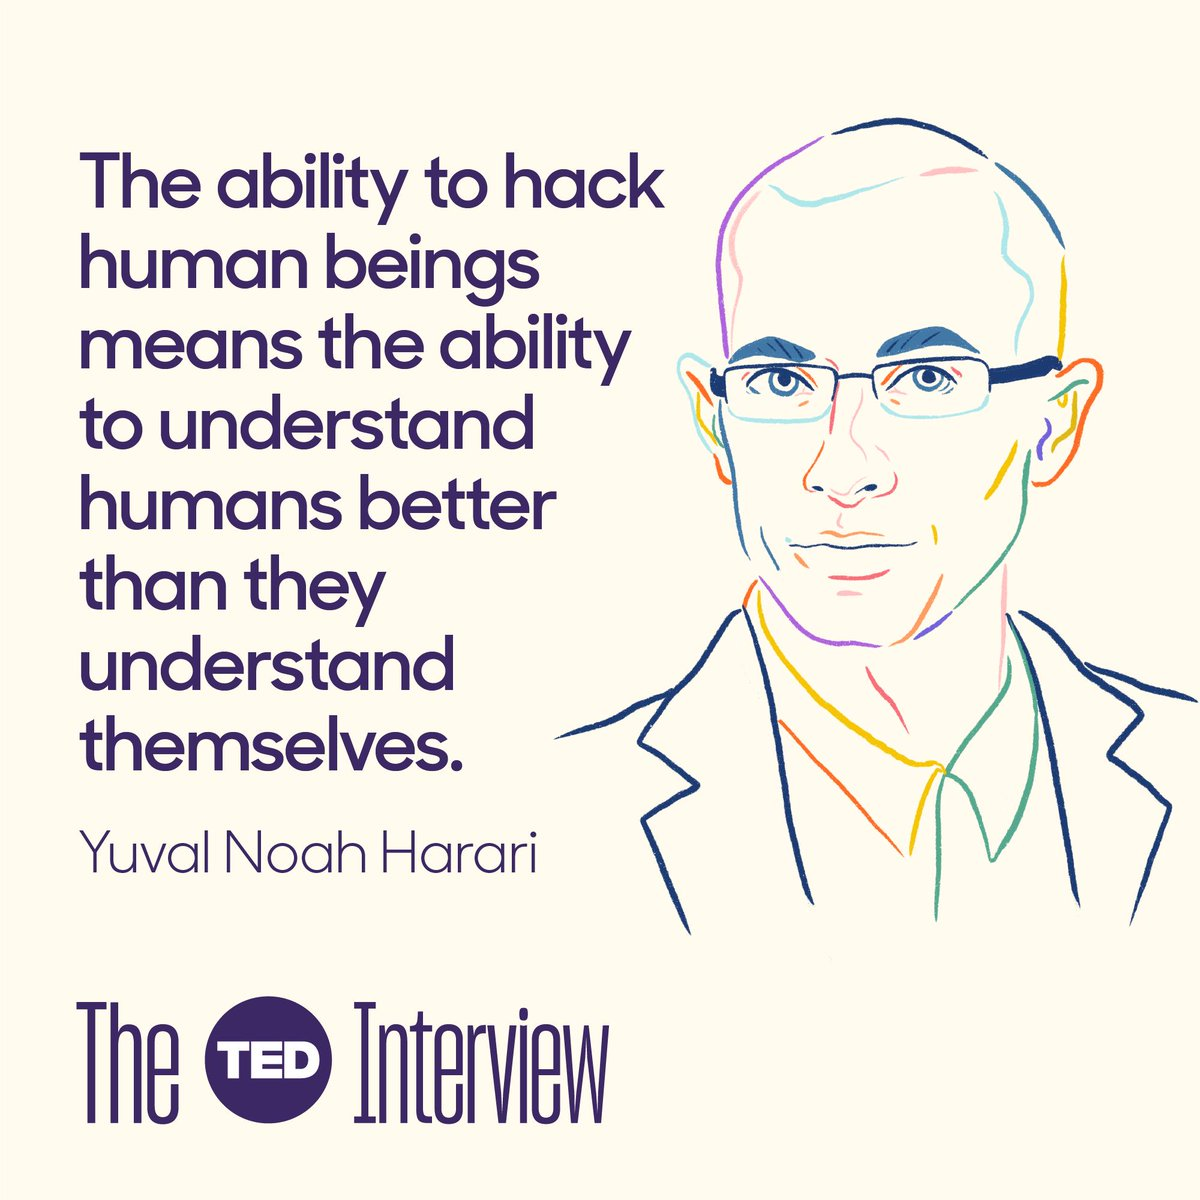 How do we take back control when technology knows us better than we know ourselves? @harari_yuval talks about the incredible effect of taking time to unplug on this episode of #TheTEDInterview.  Listen on @Spotify or your favorite podcast platform: http://t.ted.com/BQtcci1